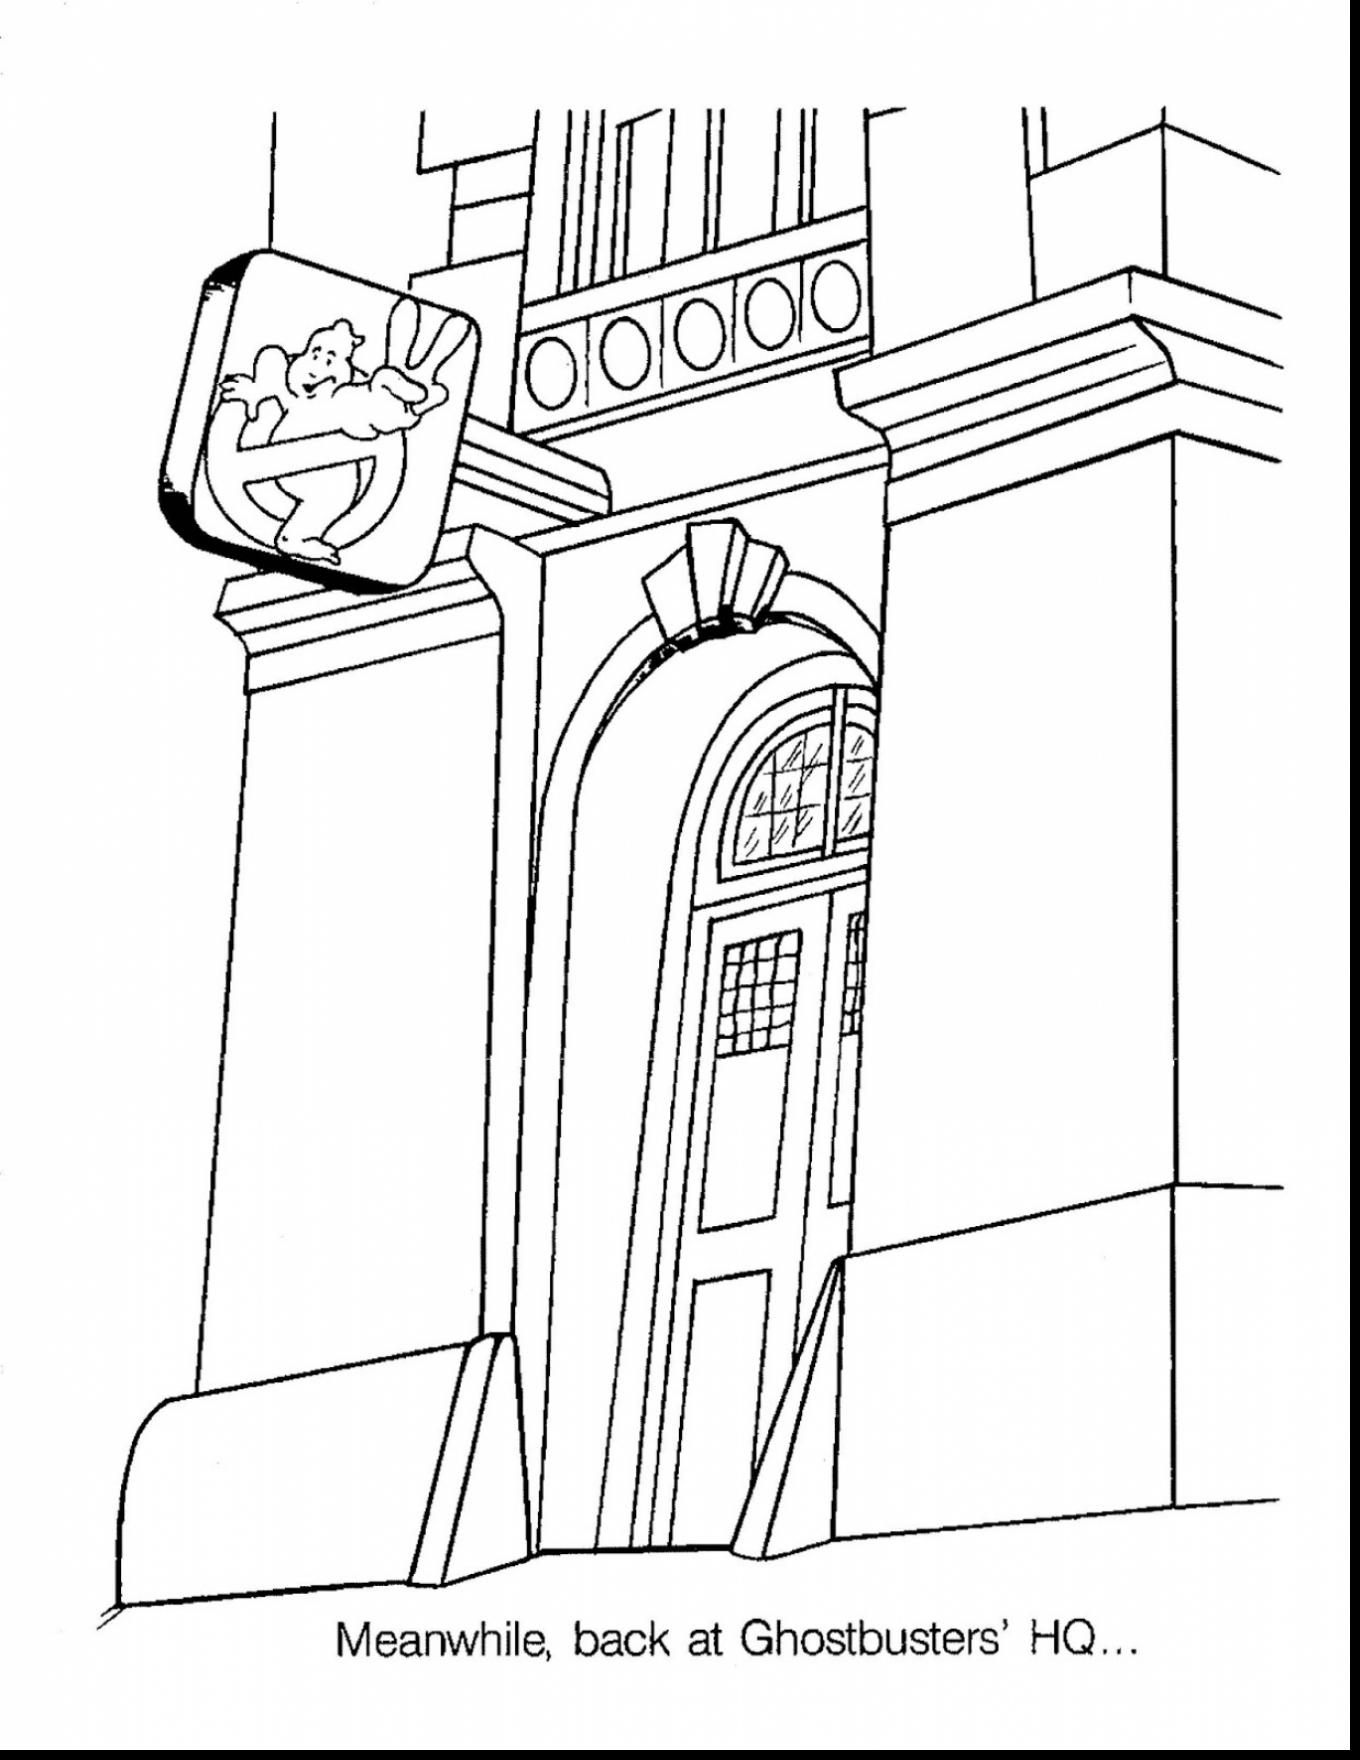 coloring ghostbusters ghostbusters 2016 coloring pages ghostbusters colores coloring ghostbusters